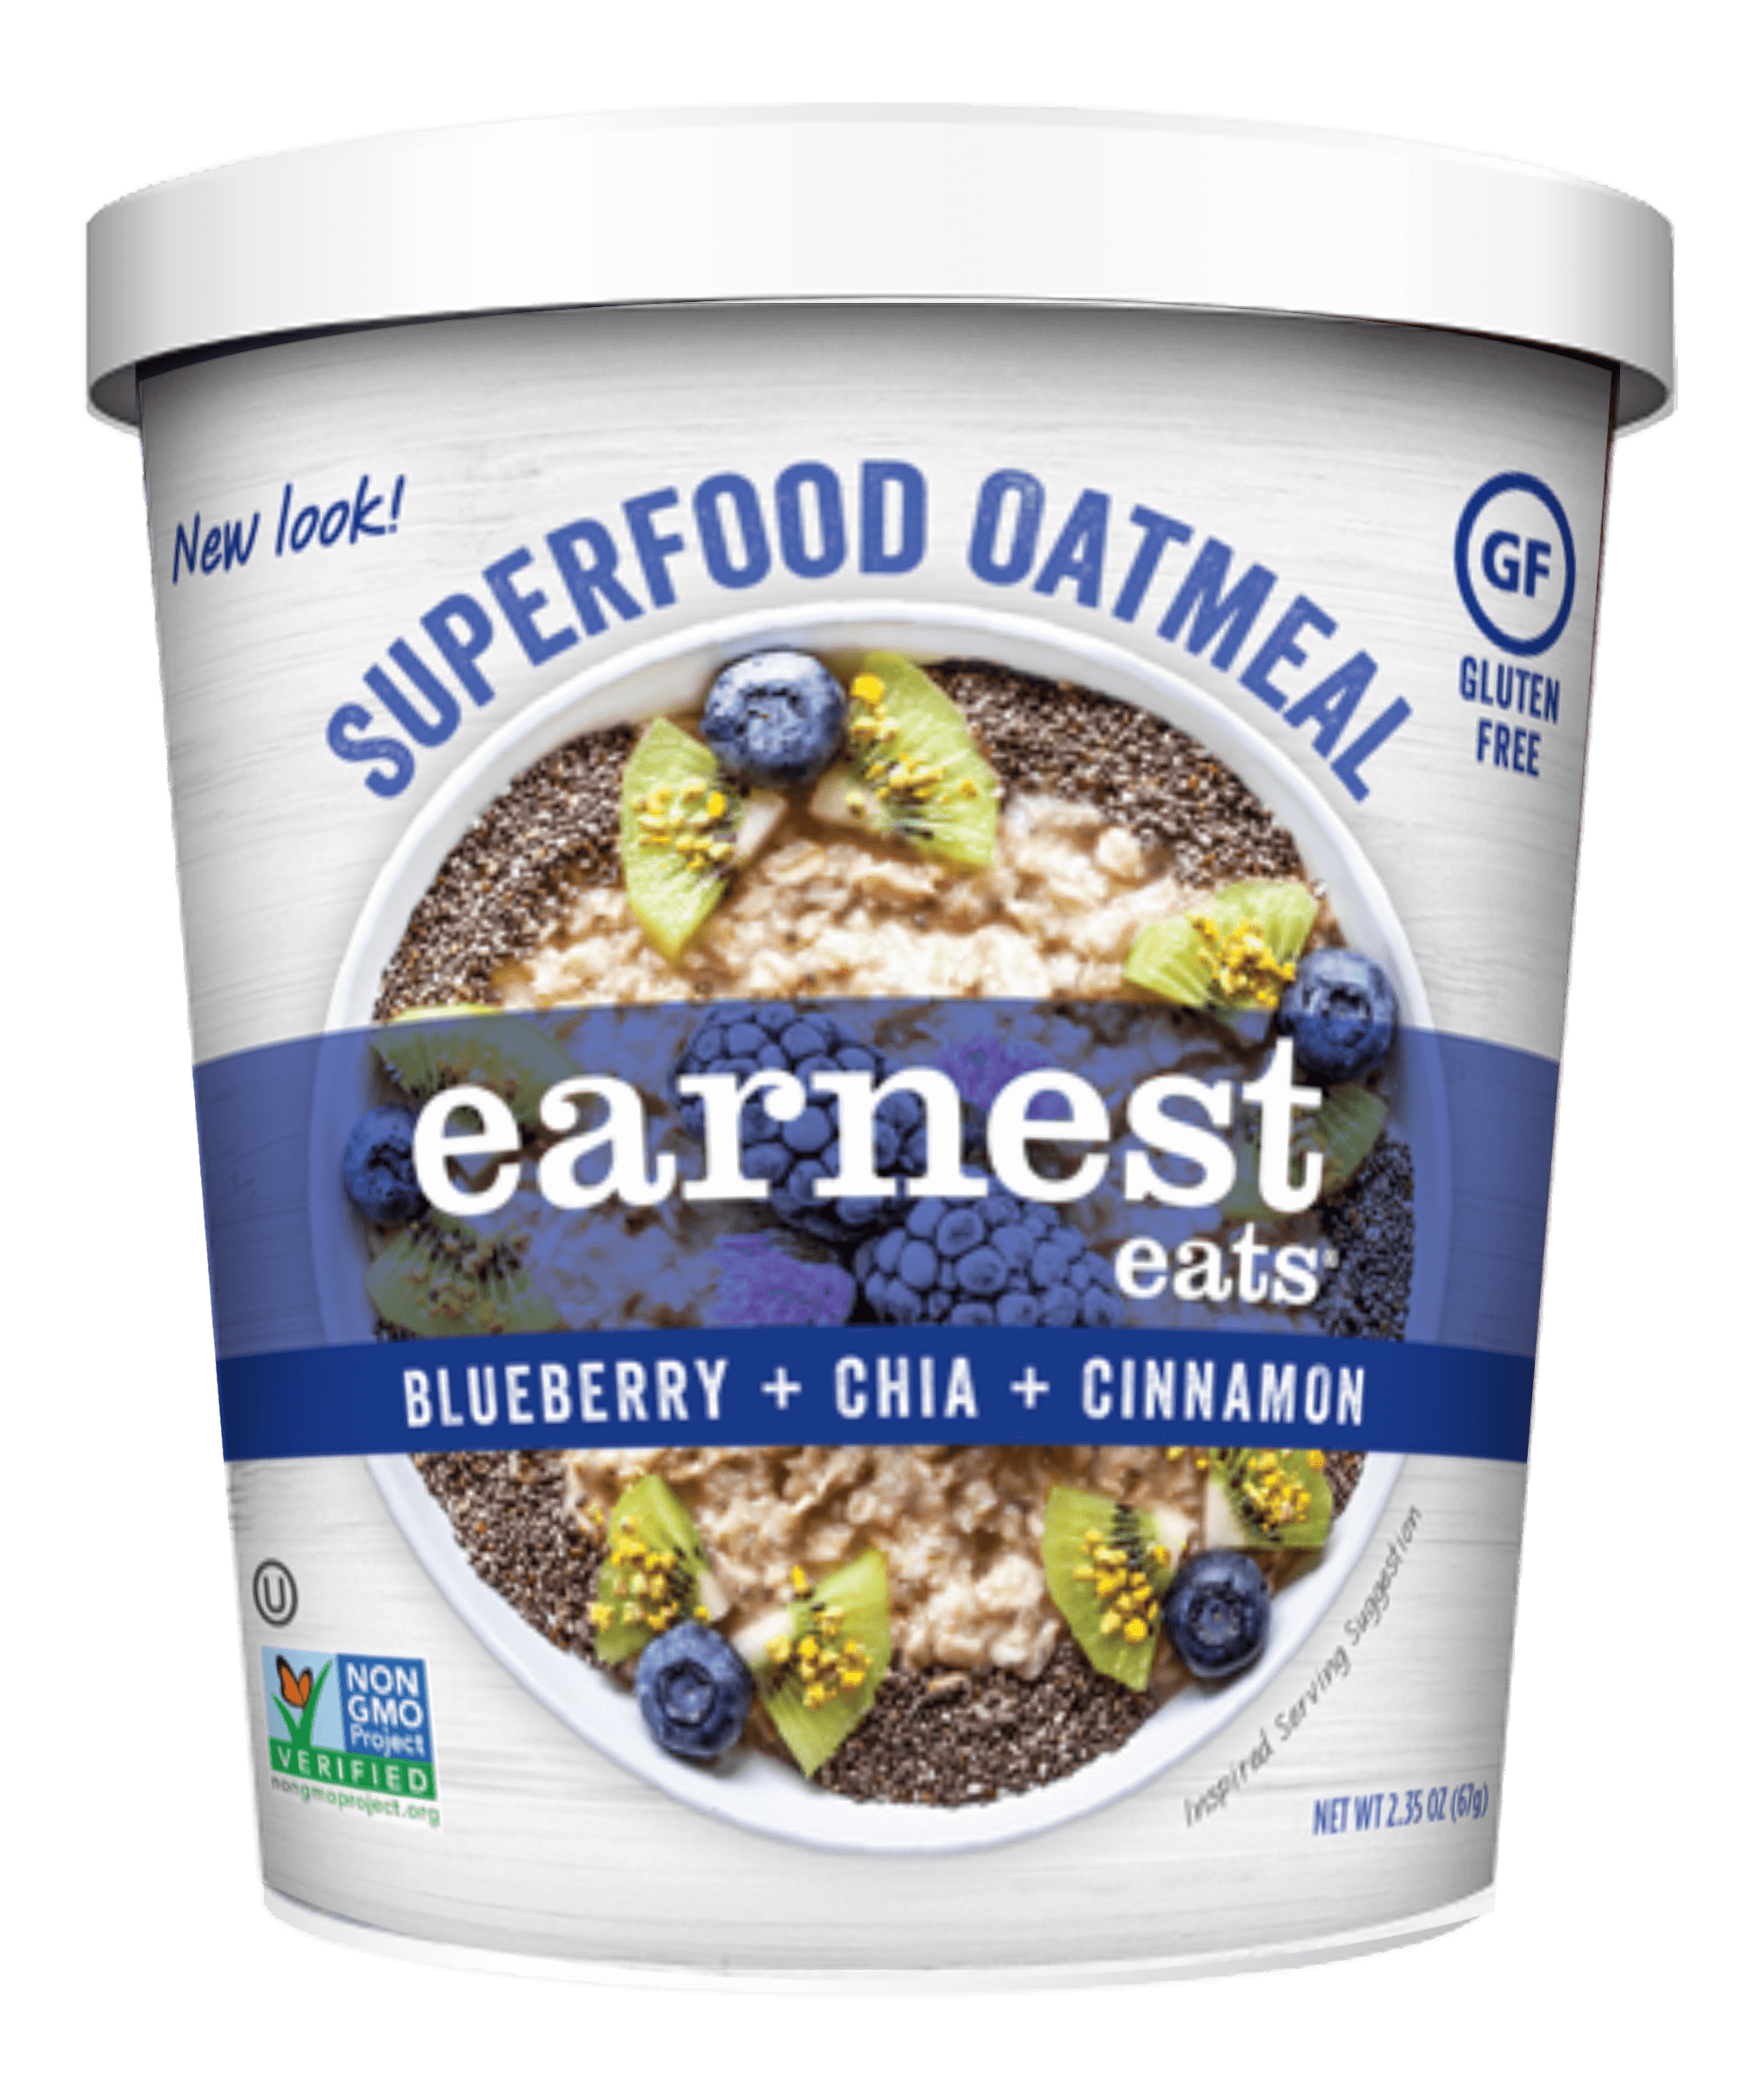 Transparent cereal cup. Superfood blueberry chia blend